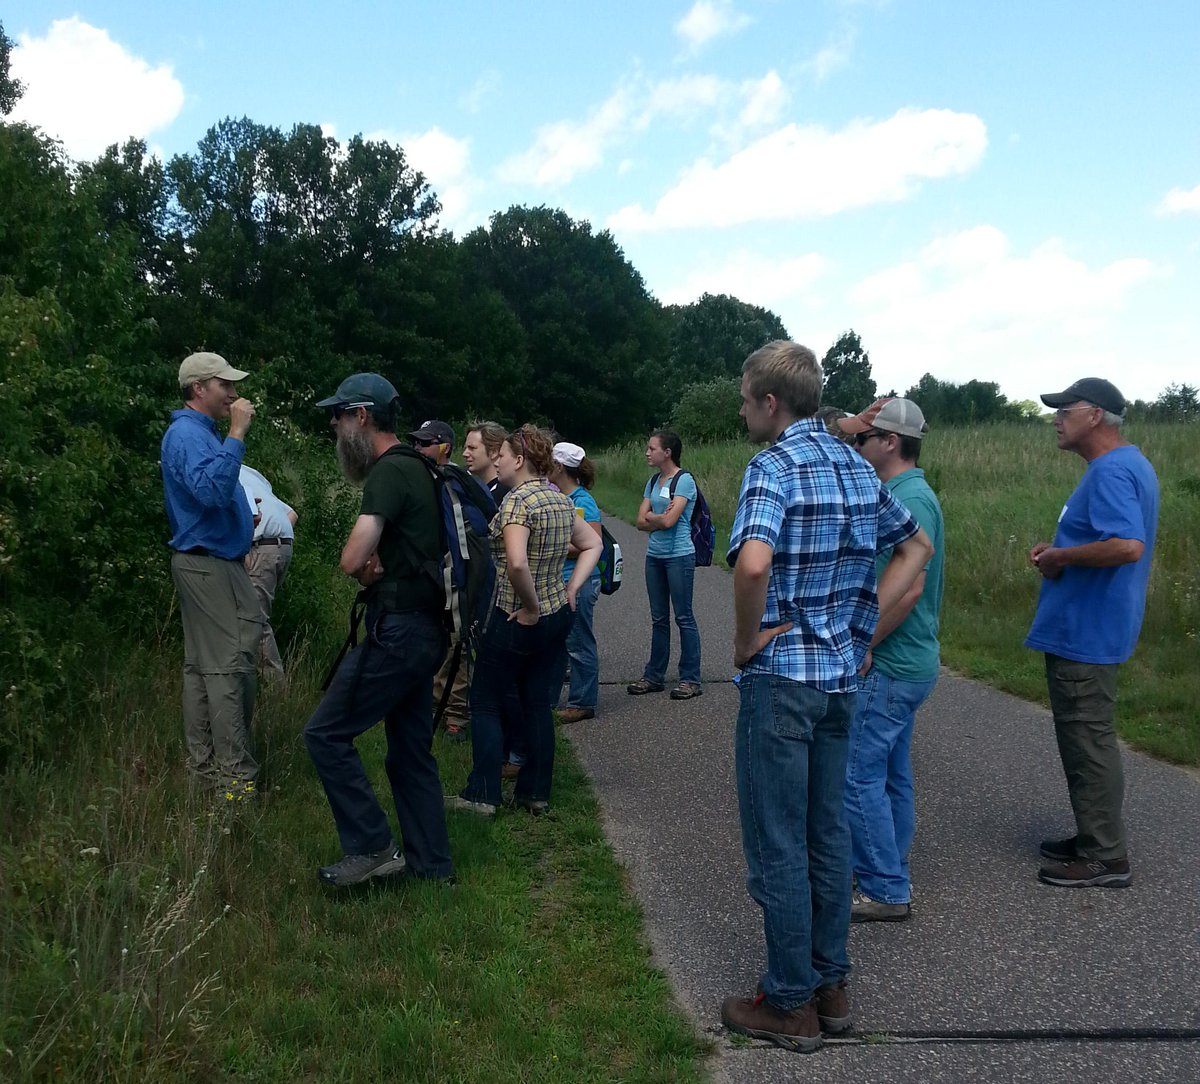 Mn Bwsr On Twitter Bwsrs Dan Shaw Leads A Basic Plant Id Course